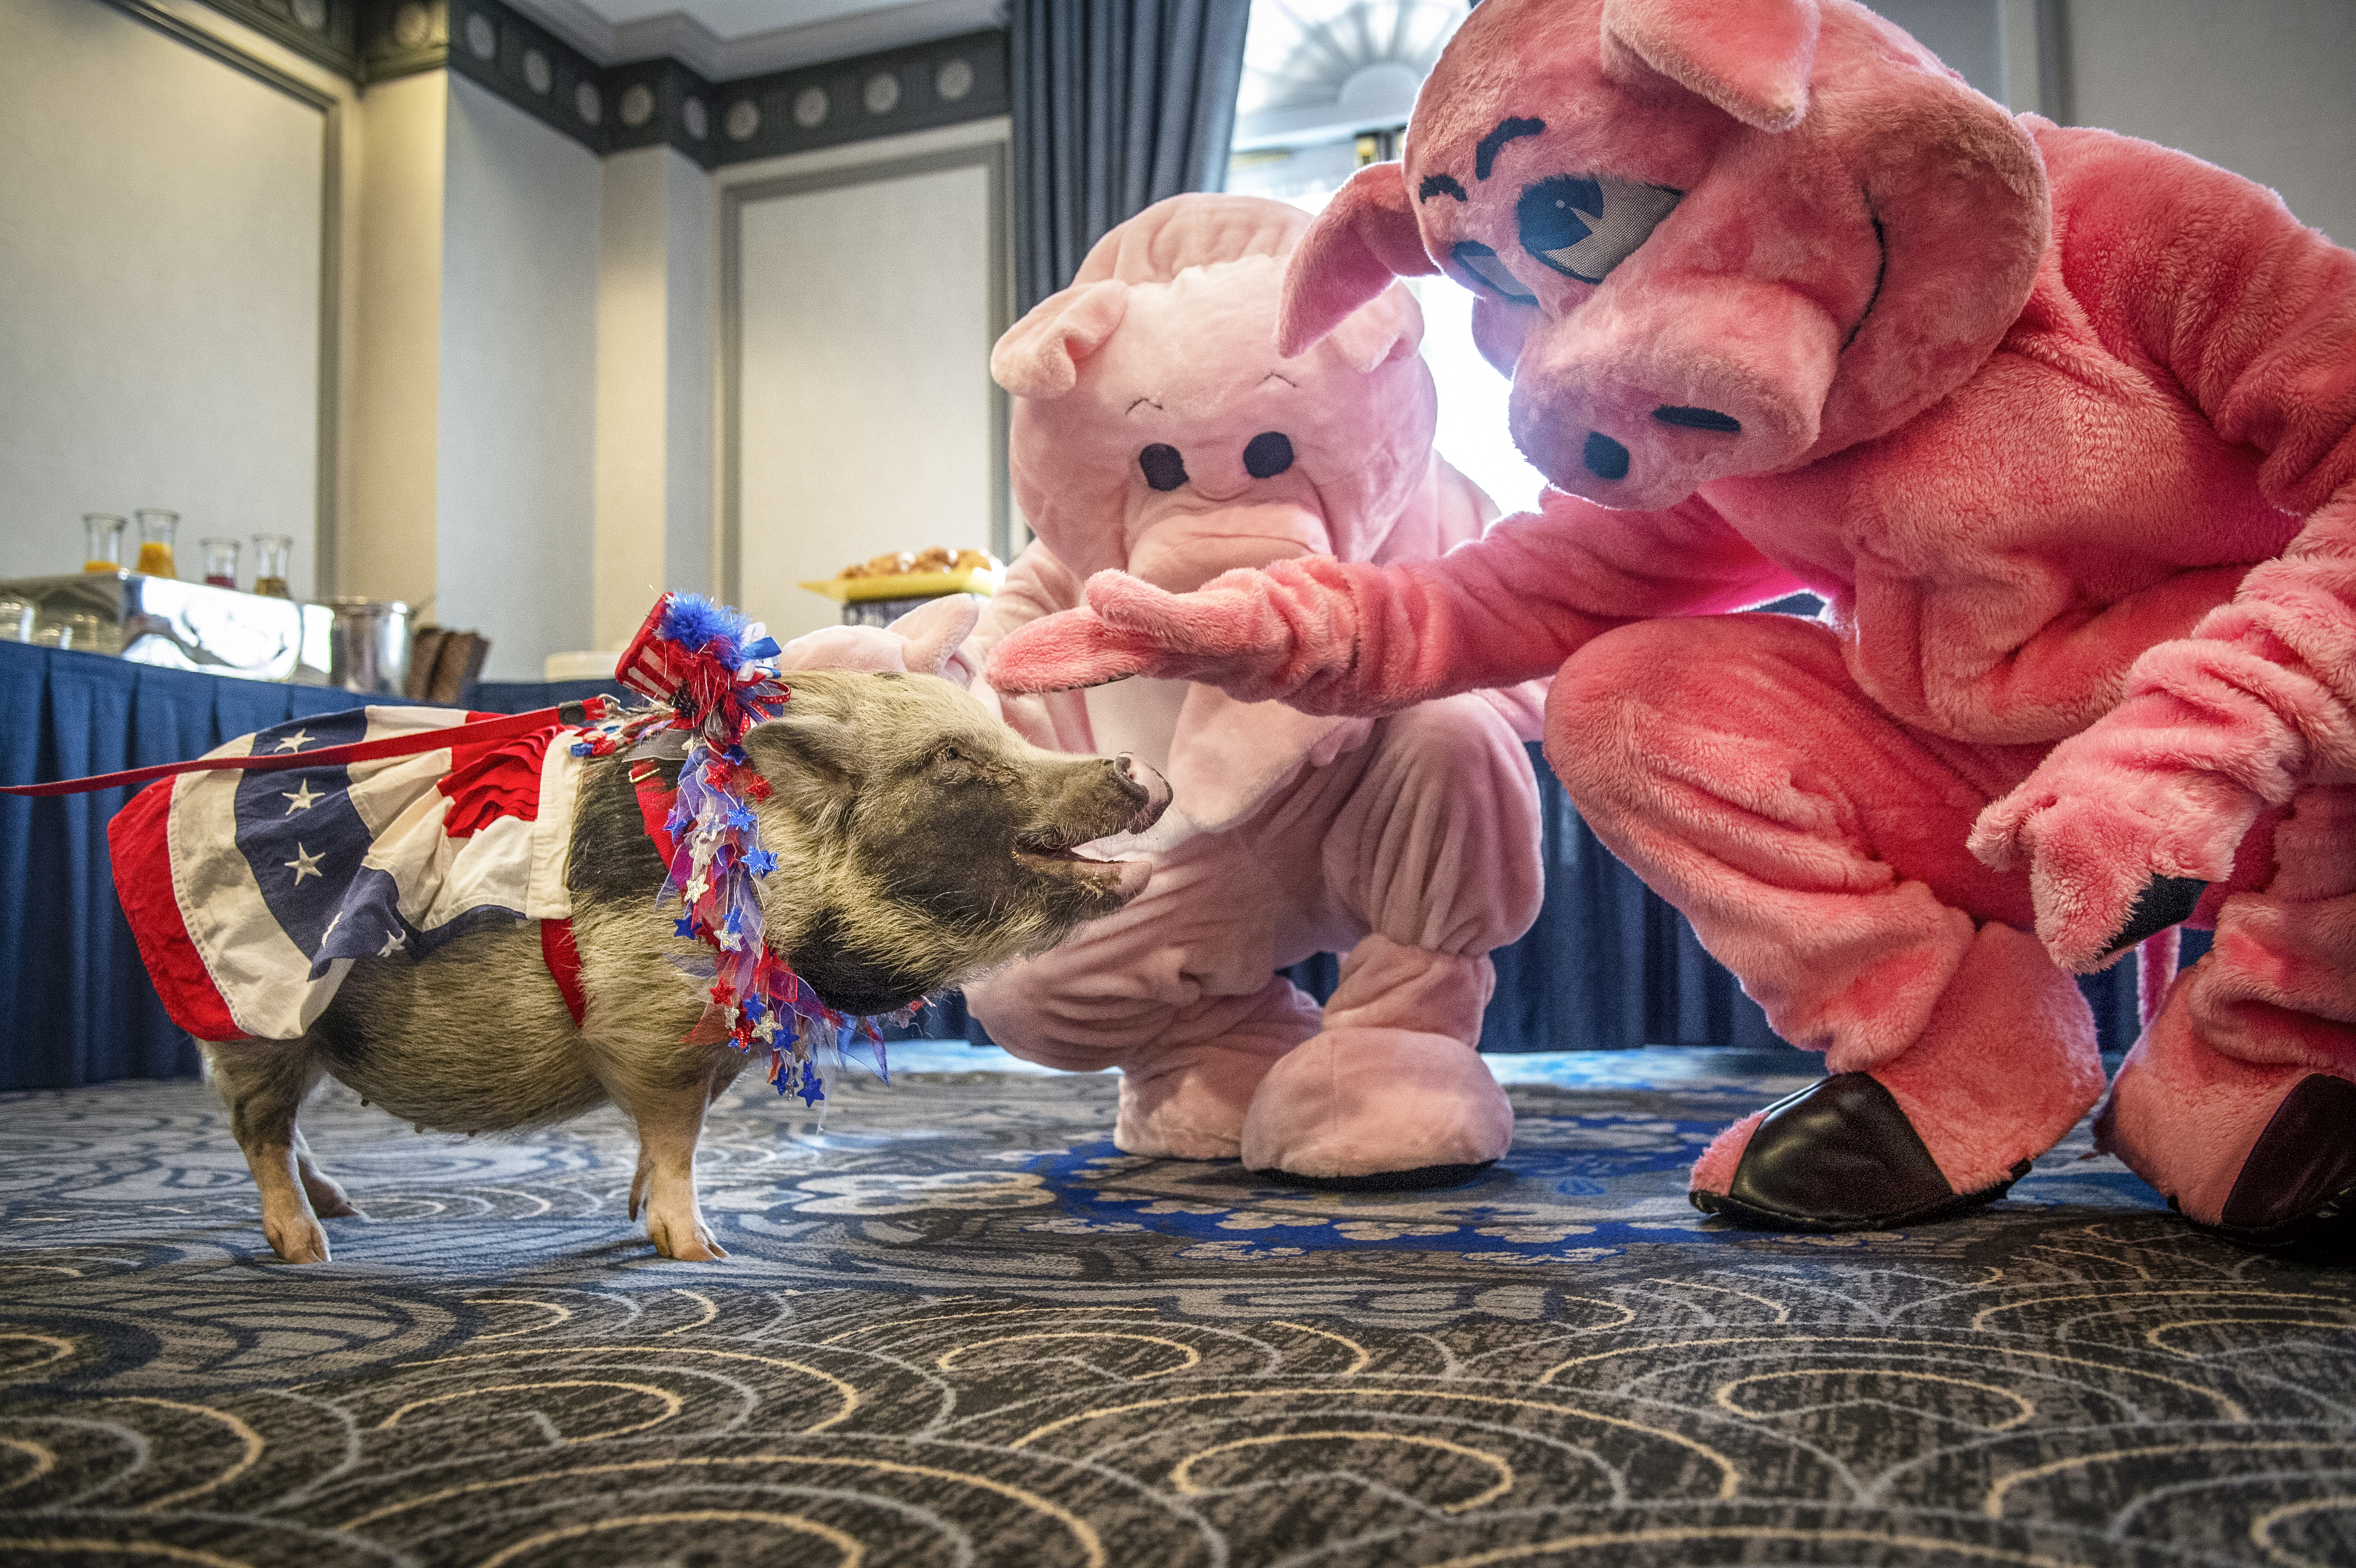 UNITED STATES - JUNE 12: Two men dressed up in pig costumes pet Faye the pig before the start of the Citizens Against Government Waste press conference to release the 2019 Congressional Pig Book report on pork spending at the Phoenix Park Hotel in Washington on Wednesday June 12, 2019. (Photo by Caroline Brehman/CQ Roll Call)